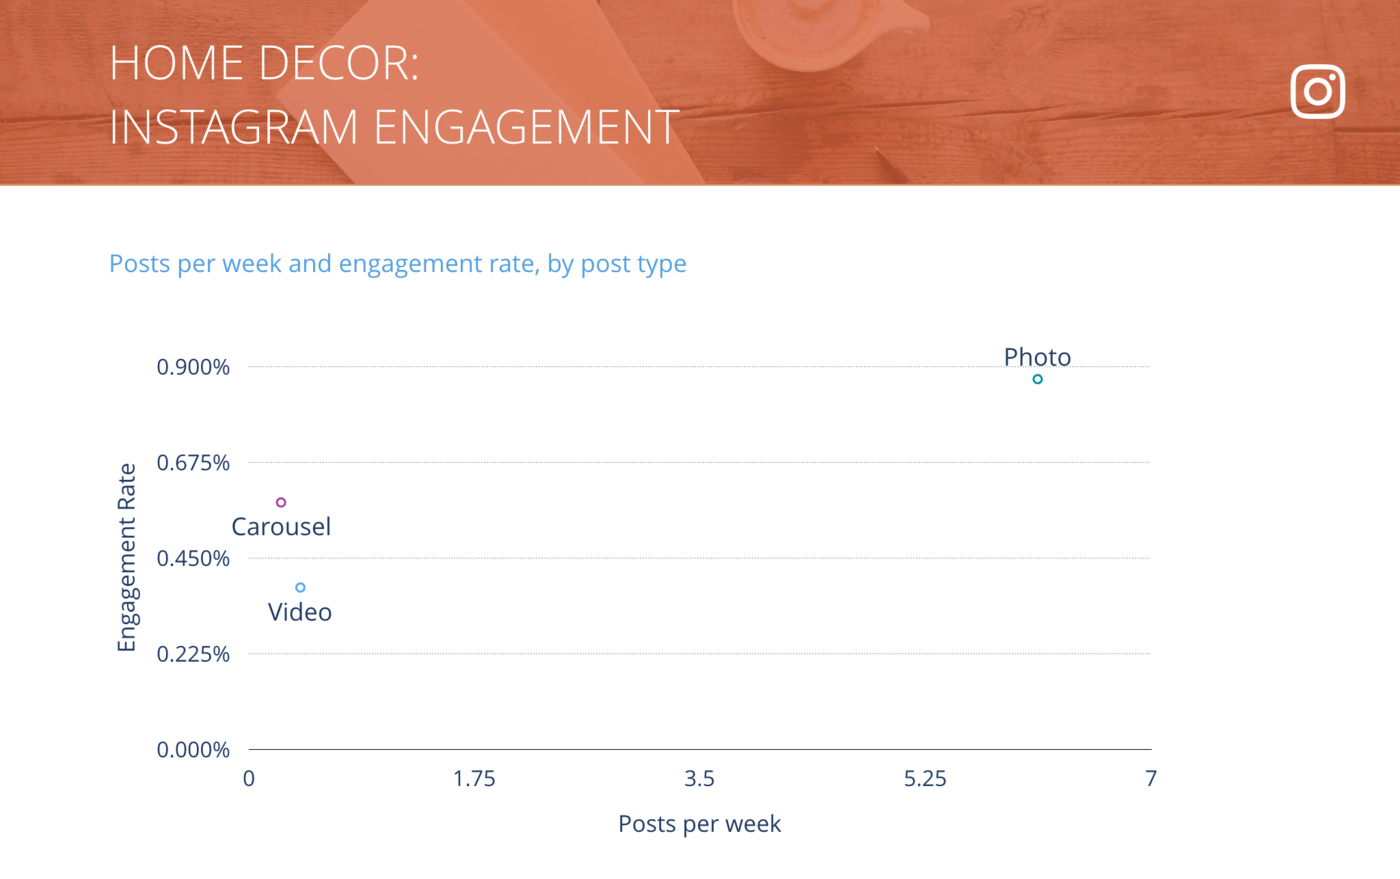 slide for Instagram Posts per Week vs. Engagement Rate per Post, Home Decor